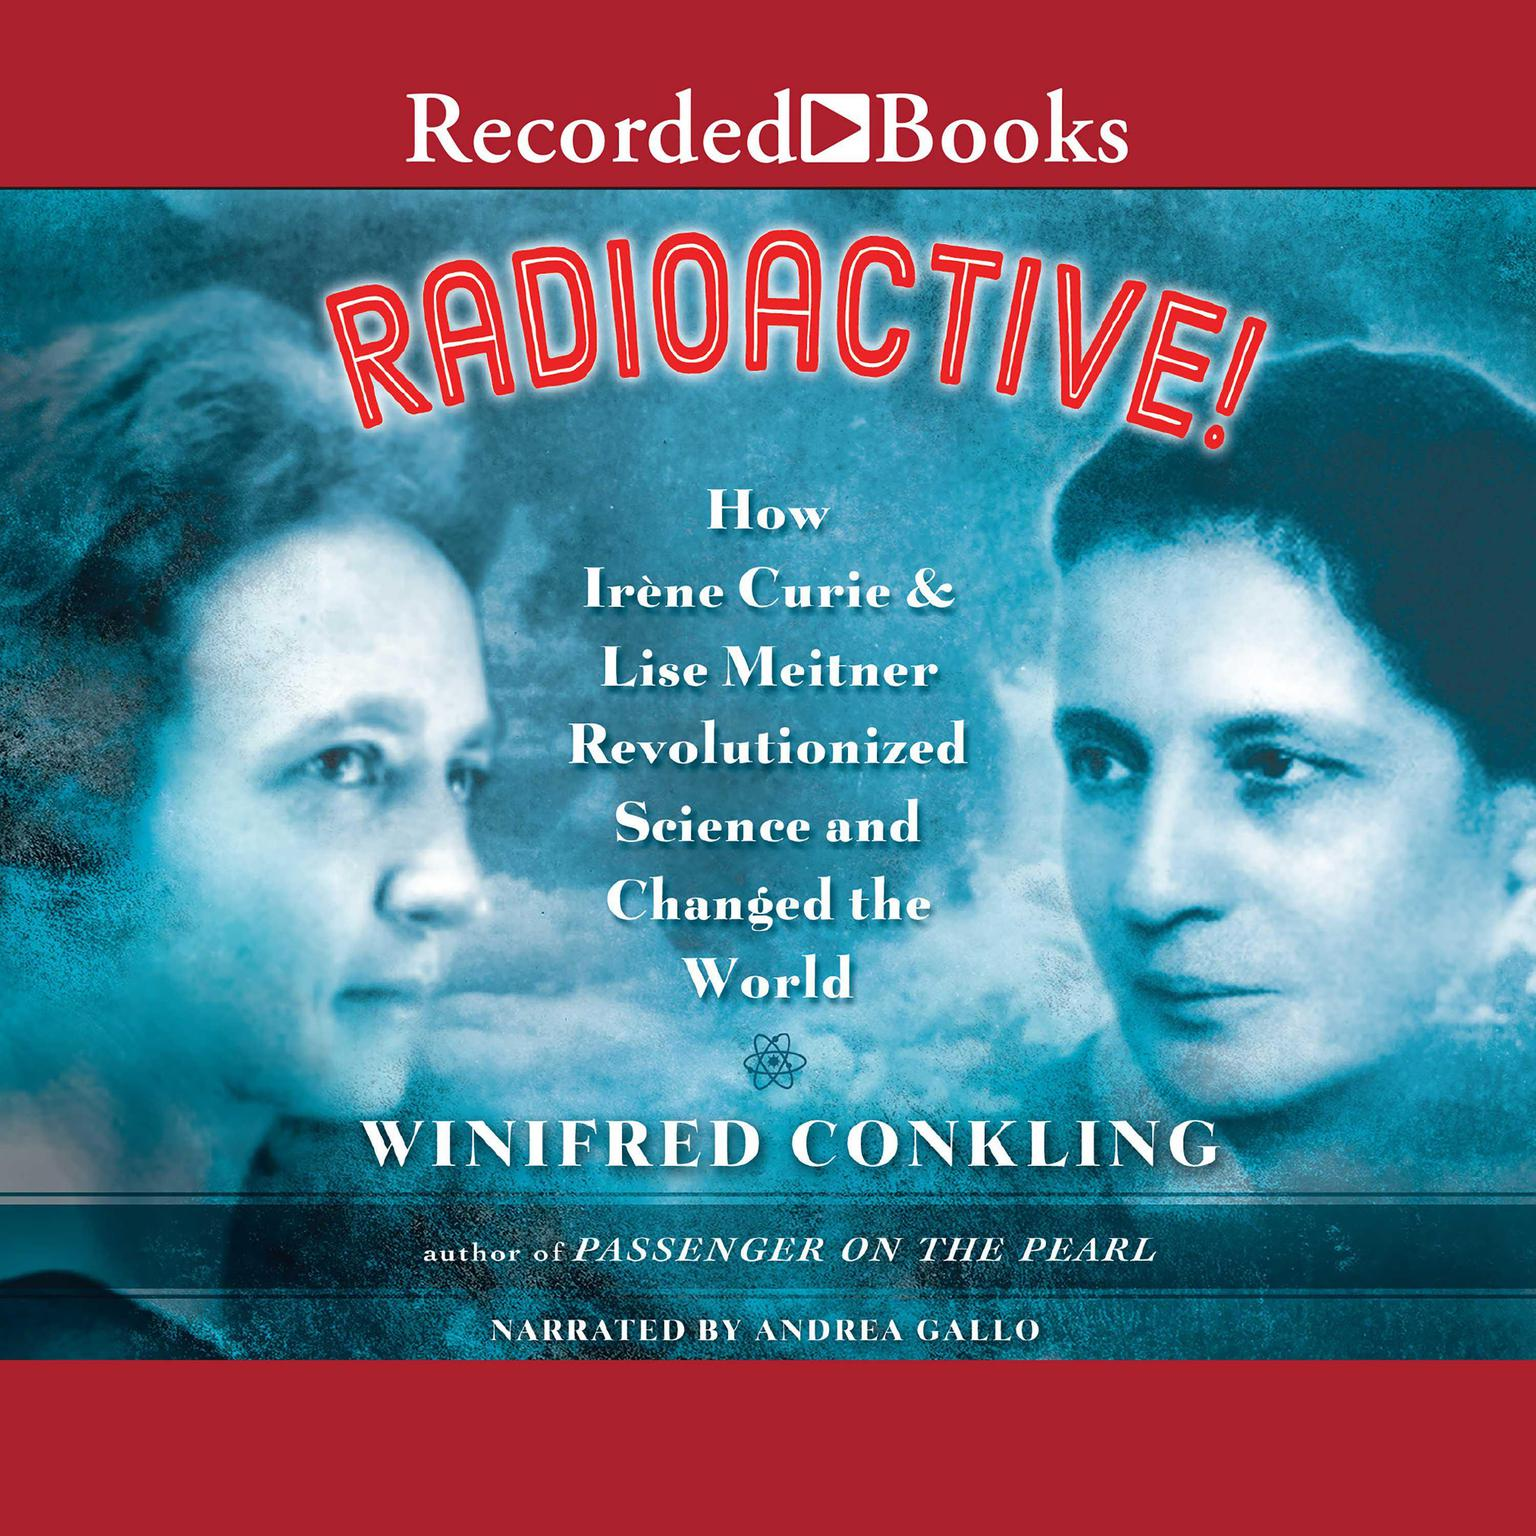 Printable Radioactive!: How Irene Curie and Lise Meitner Revolutionized Science and Changed the World Audiobook Cover Art